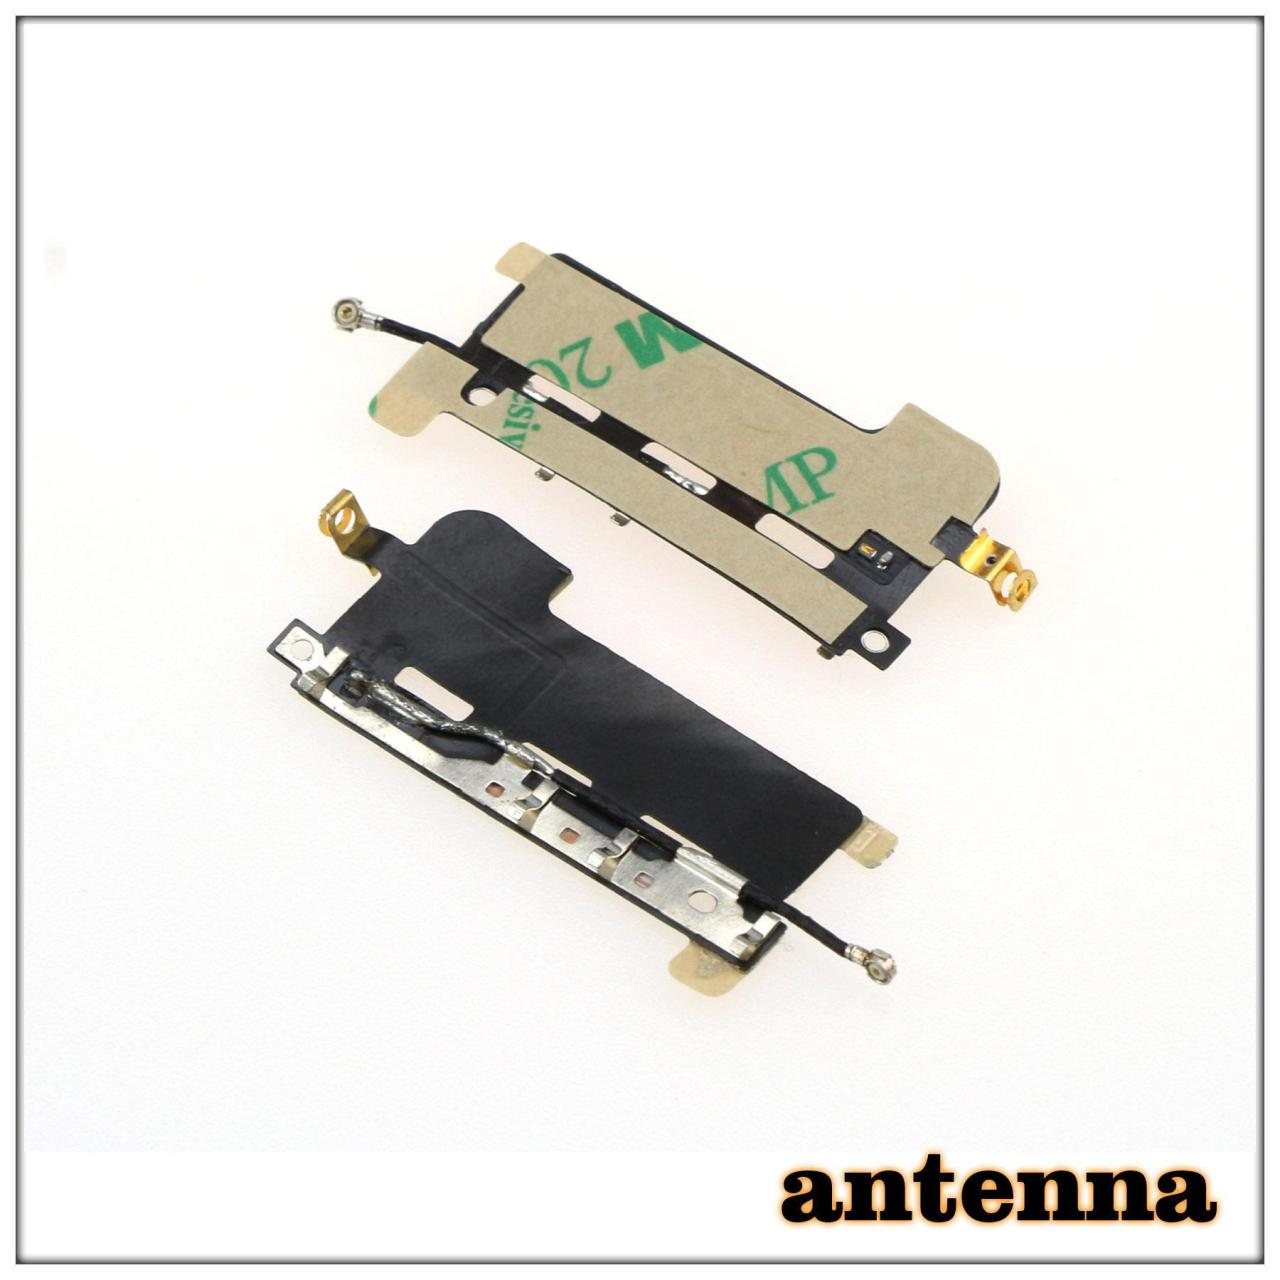 iPhone antenna Parts inside iPhone Manufactures